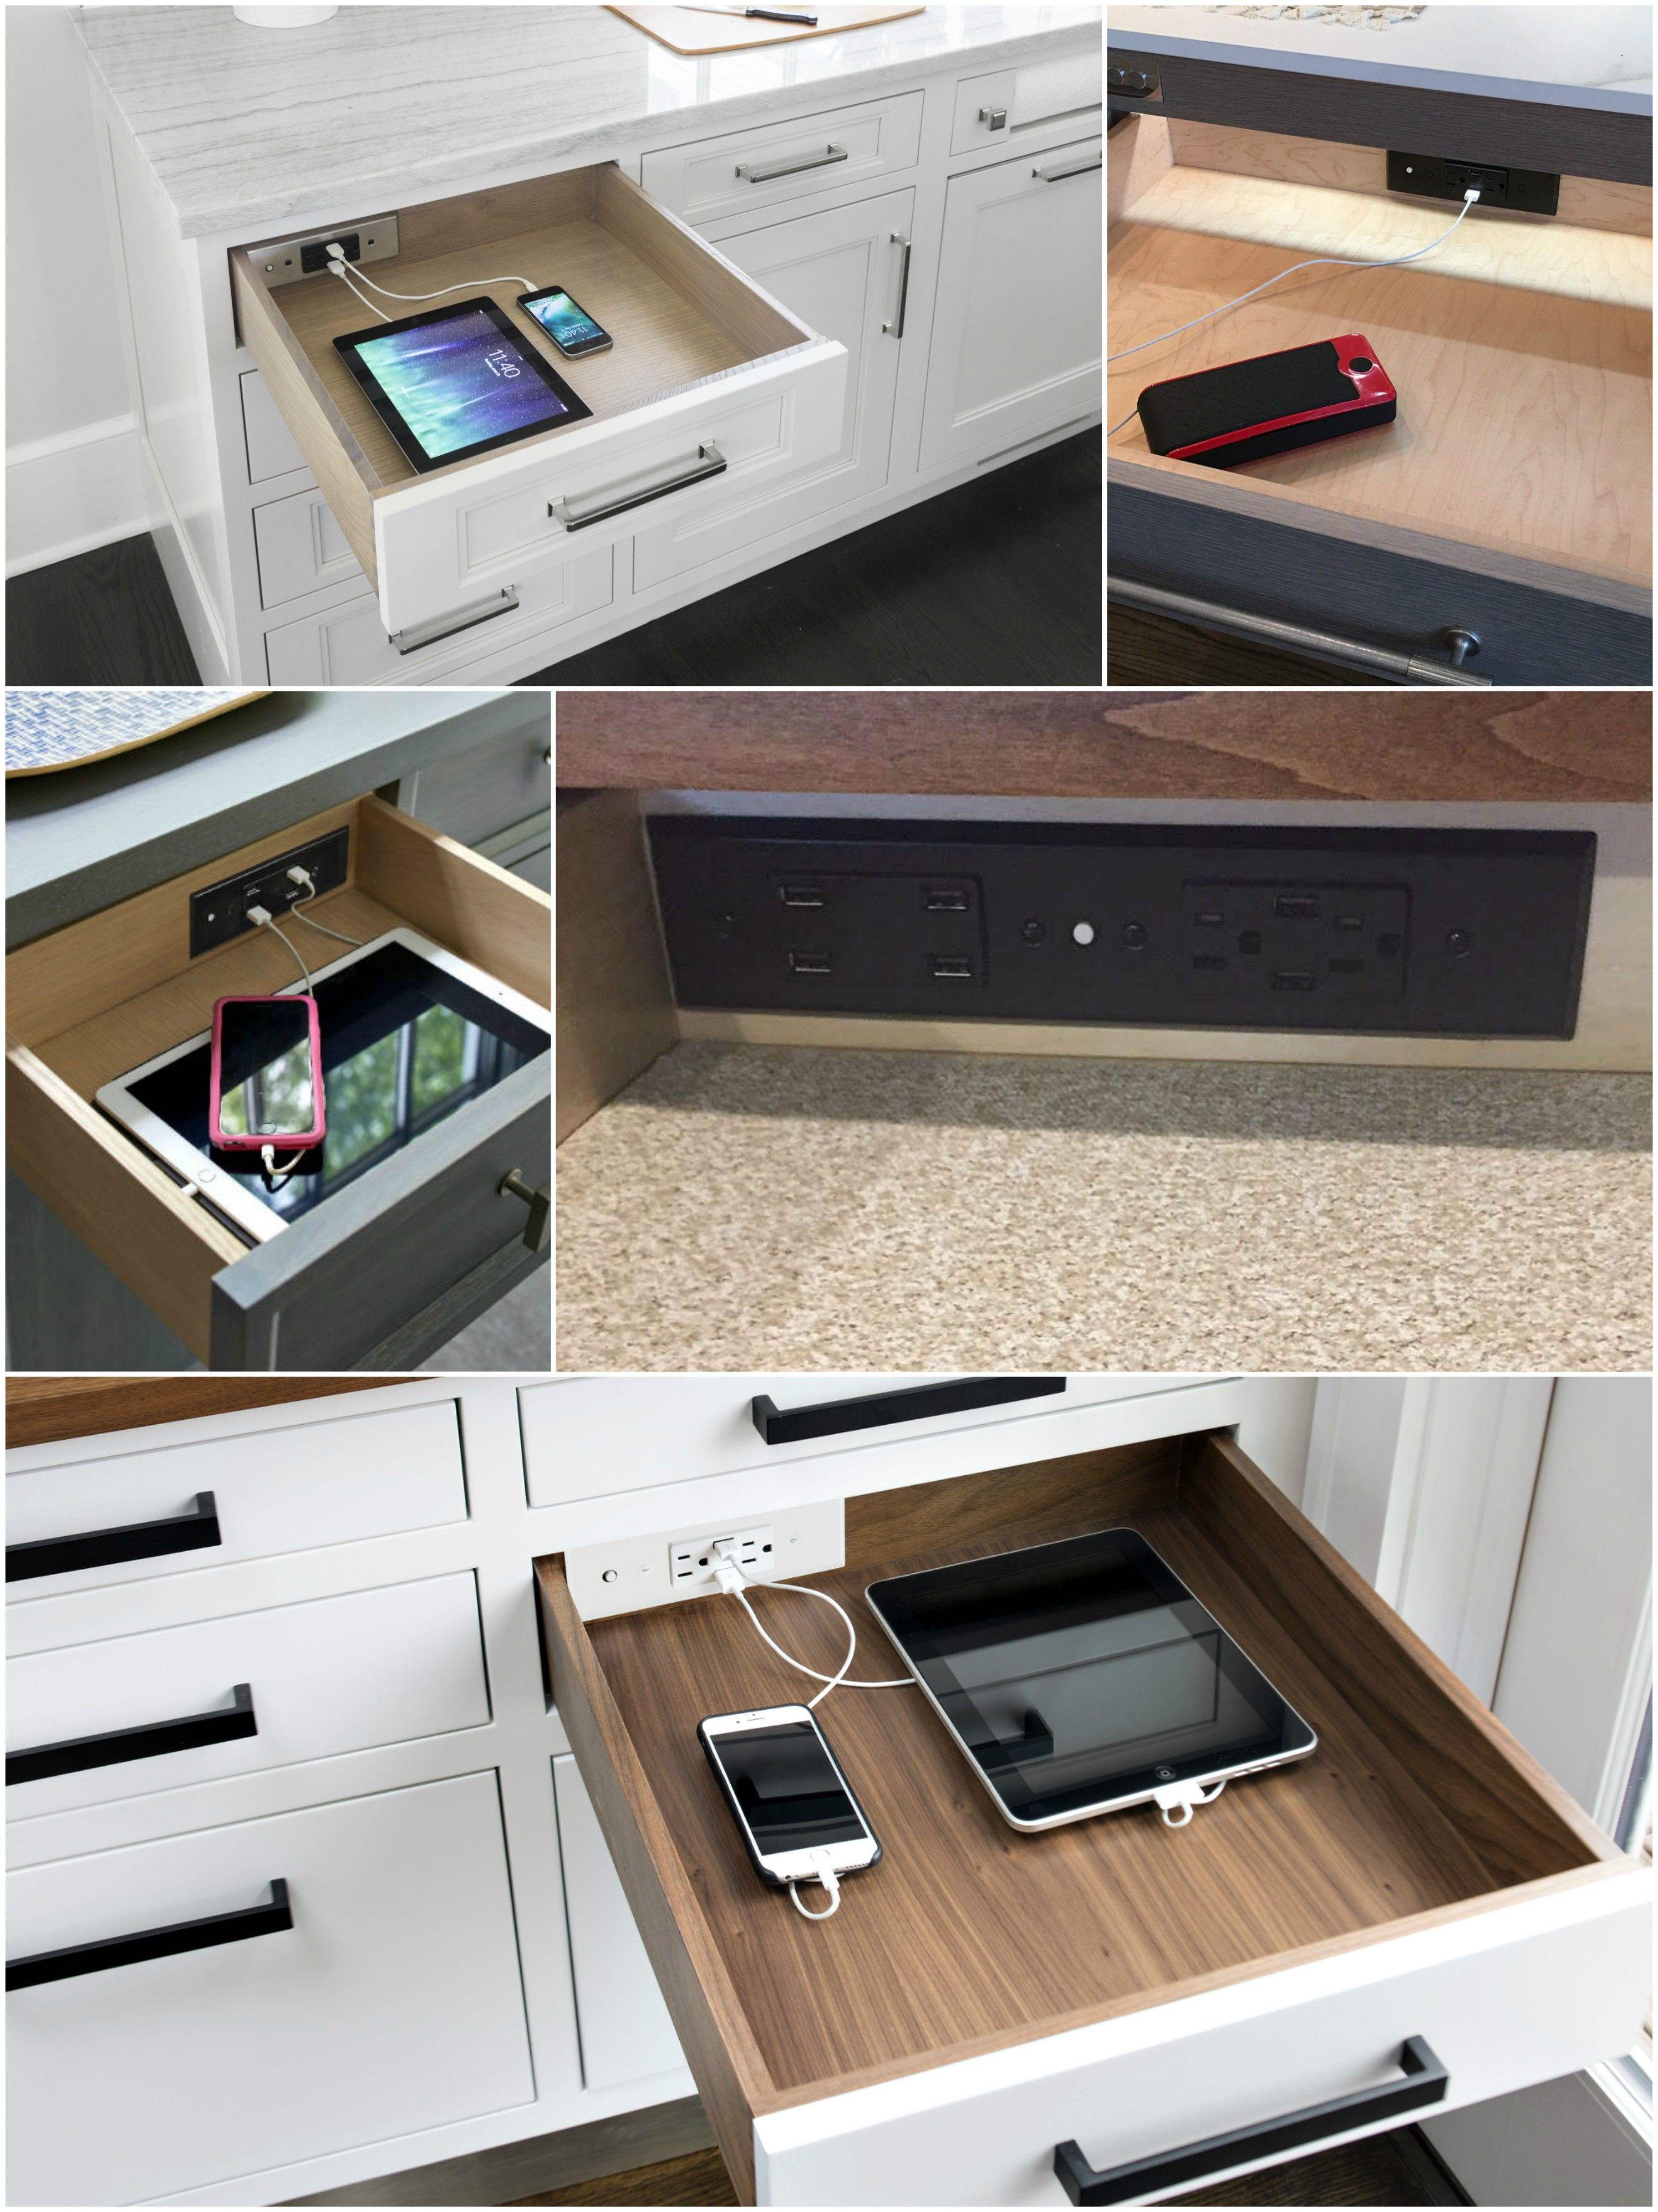 Look At All Those In Drawer Charging Outlets What A Perfect Way To Make A Charging Station In Your Home Built In Desk Cool Kitchens House Design